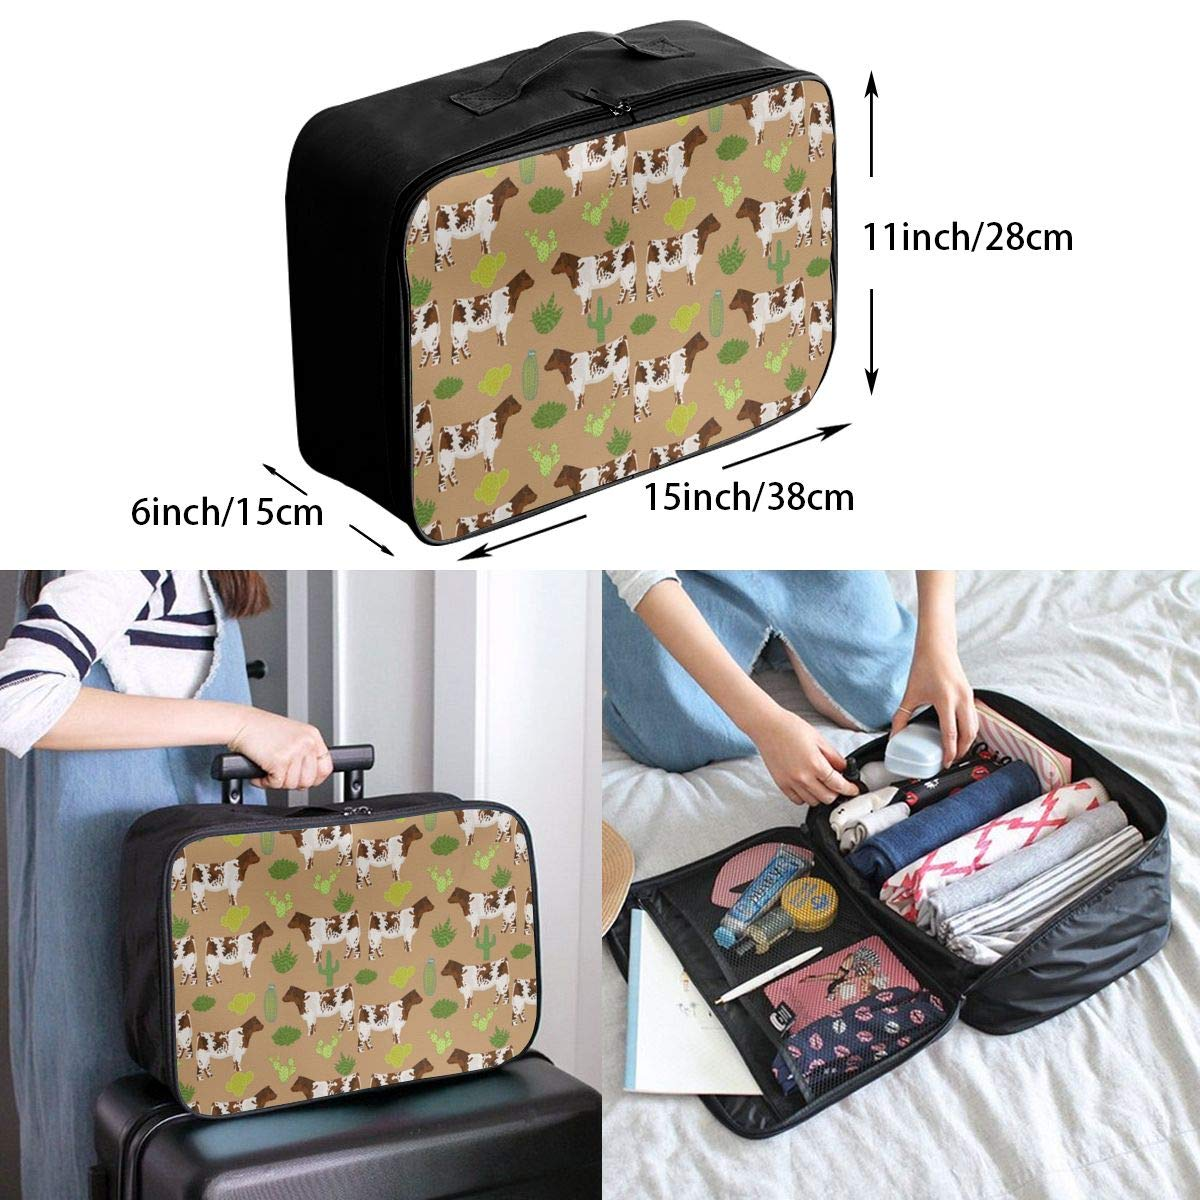 Shorthorn Cattle And Cautus Travel Lightweight Waterproof Folding Storage Portable Luggage Duffle Tote Bag Large Capacity In Trolley Handle Bags 6x11x15 Inch